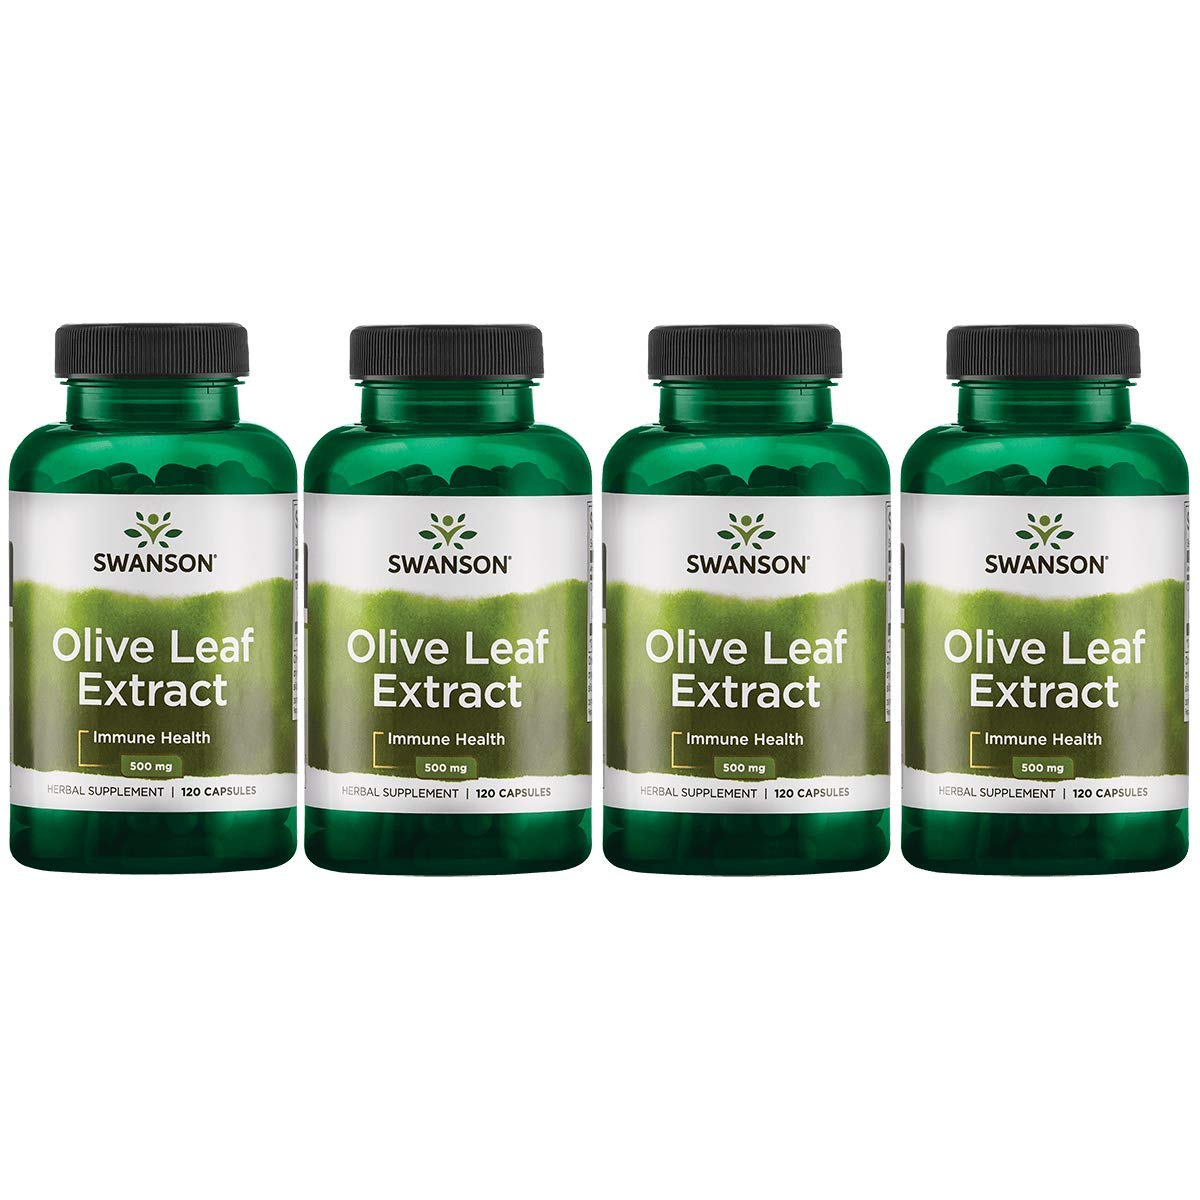 Swanson Olive Leaf Extract 500 mg 120 Caps 4 Pack